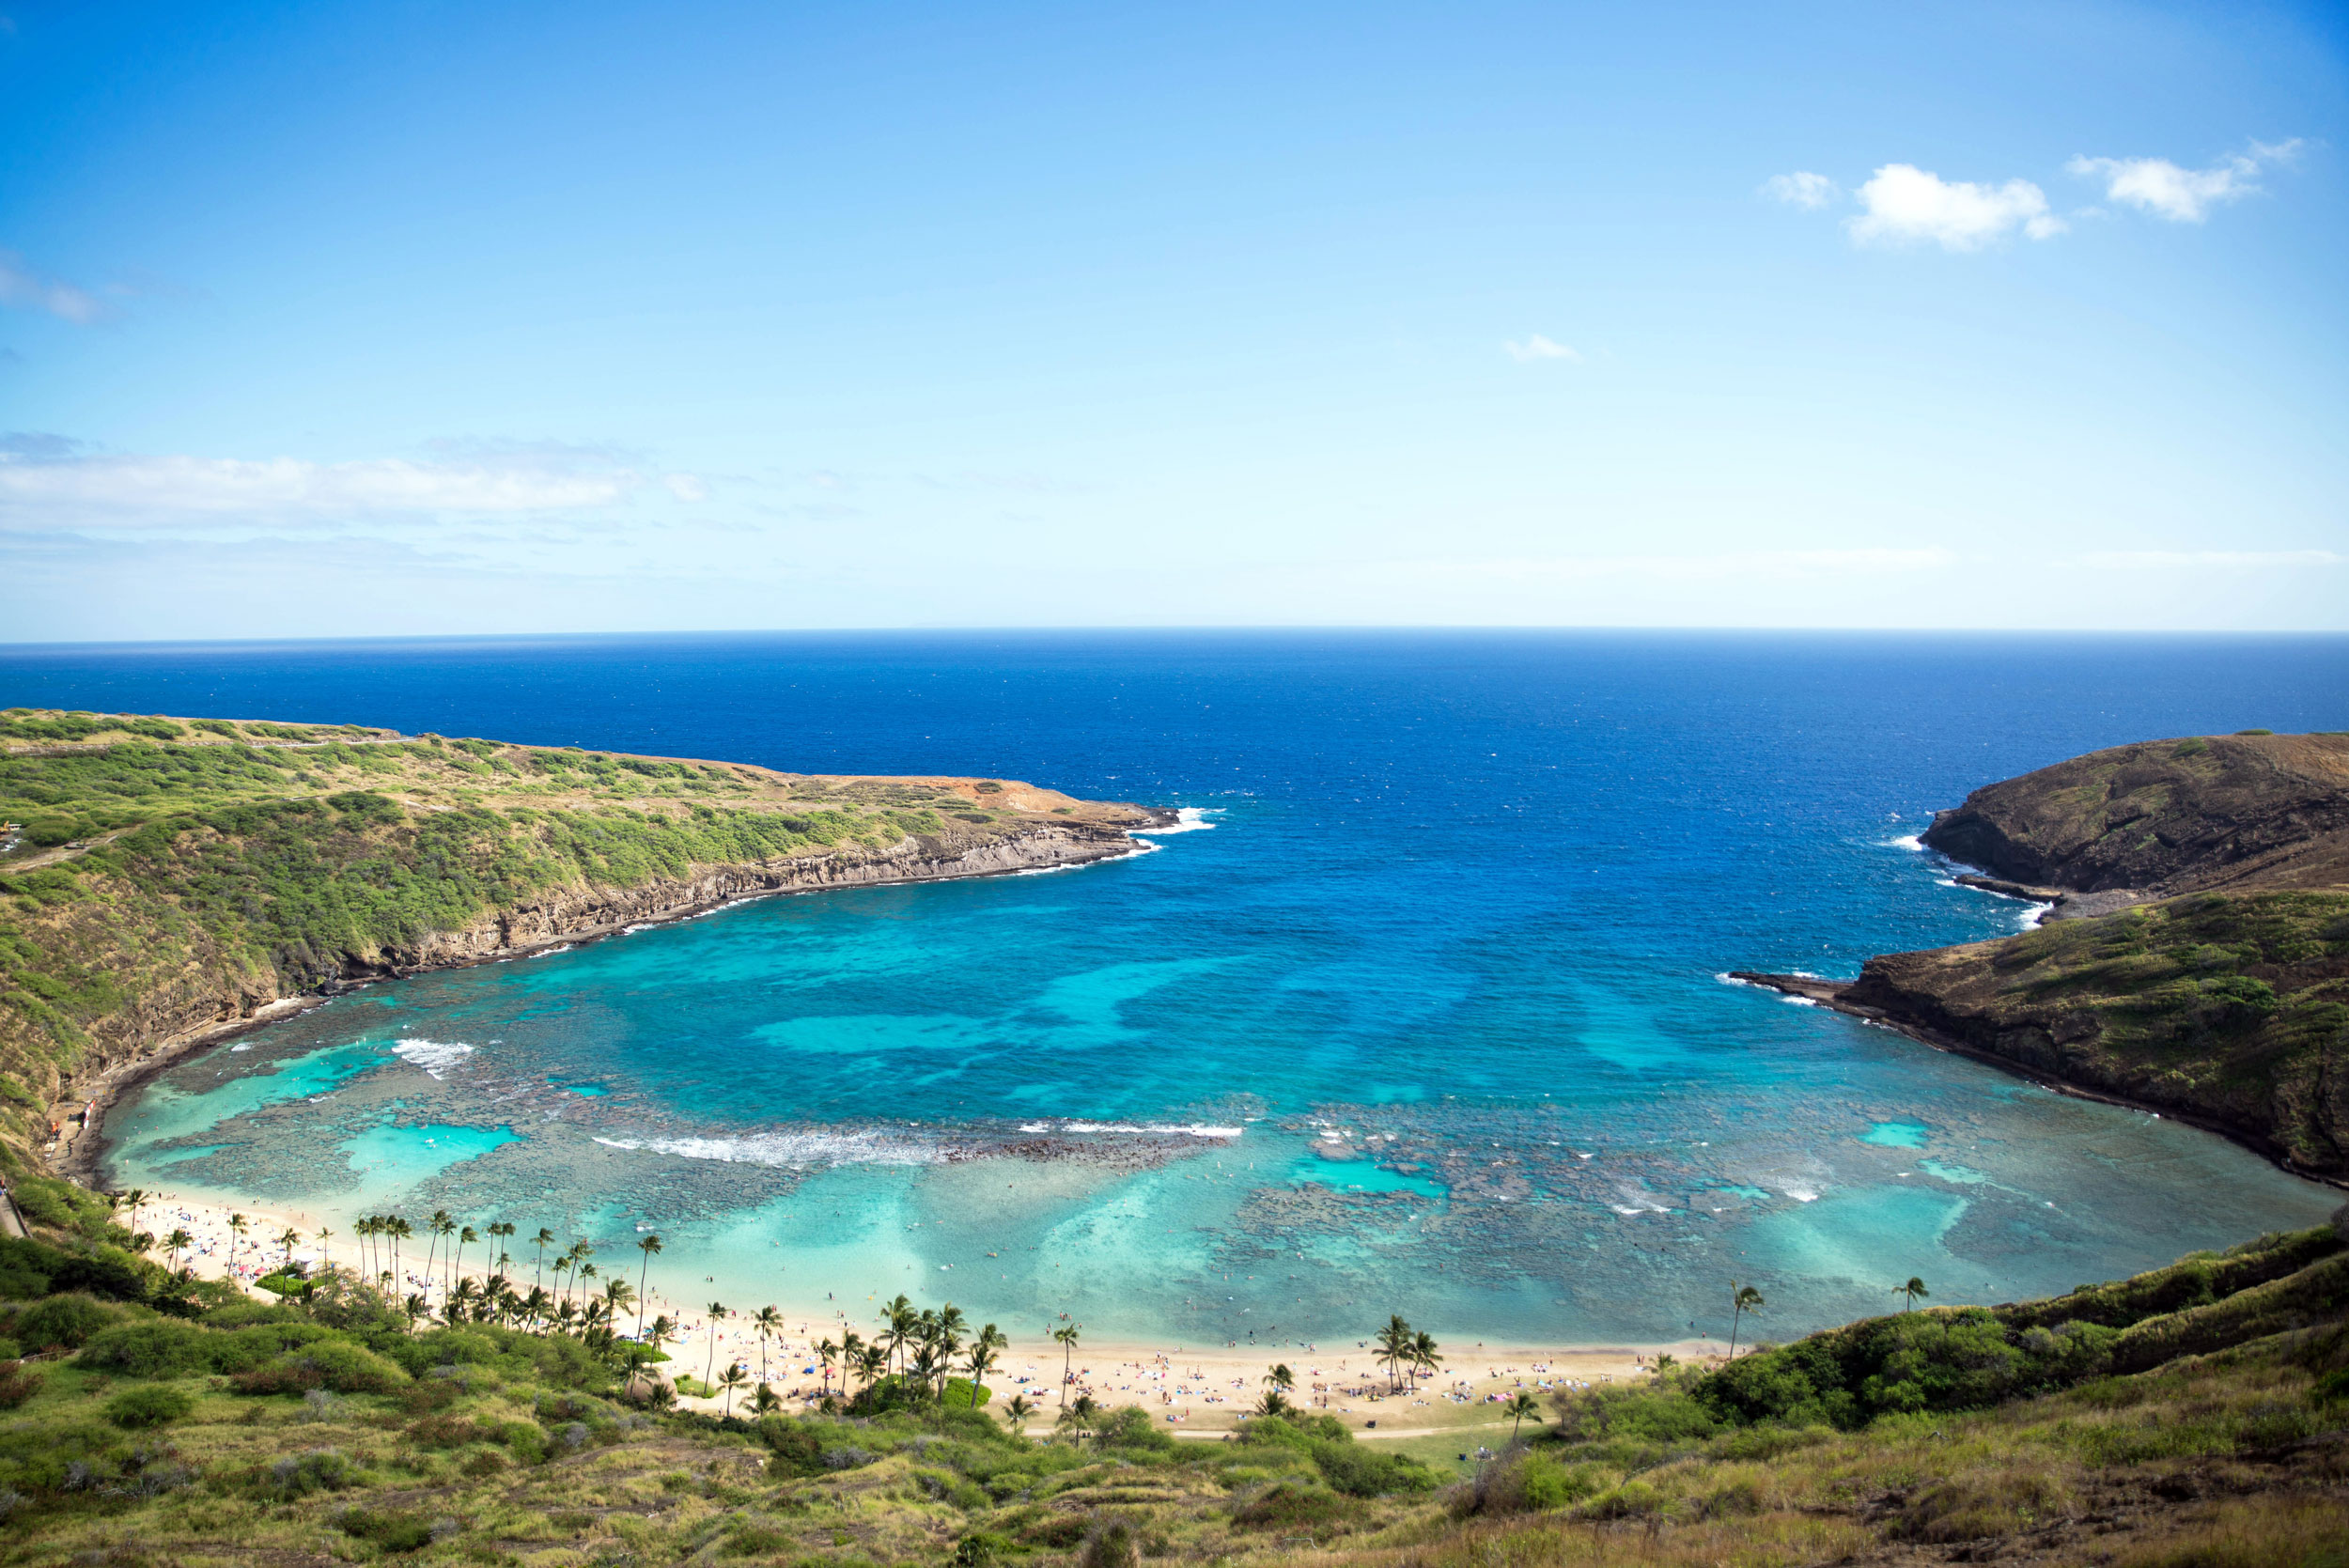 Hanauma Bay in Honolulu, Hawaii